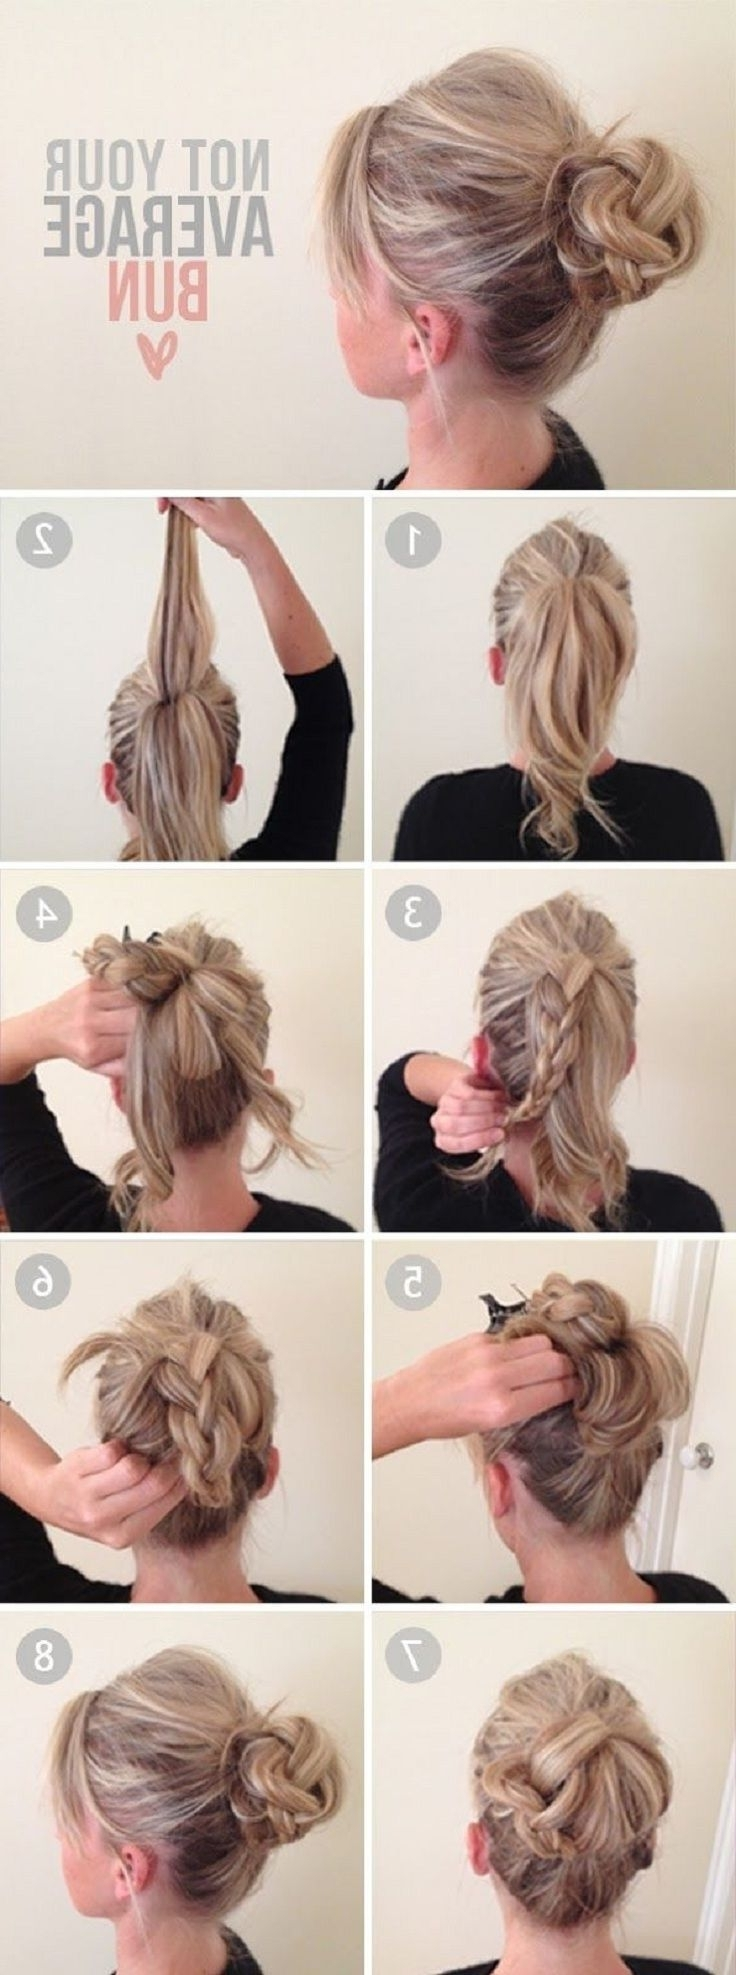 14 Amazing Double Braid Bun Hairstyles – Pretty Designs Inside Well Known Twin Braid Updo Hairstyles (View 2 of 15)